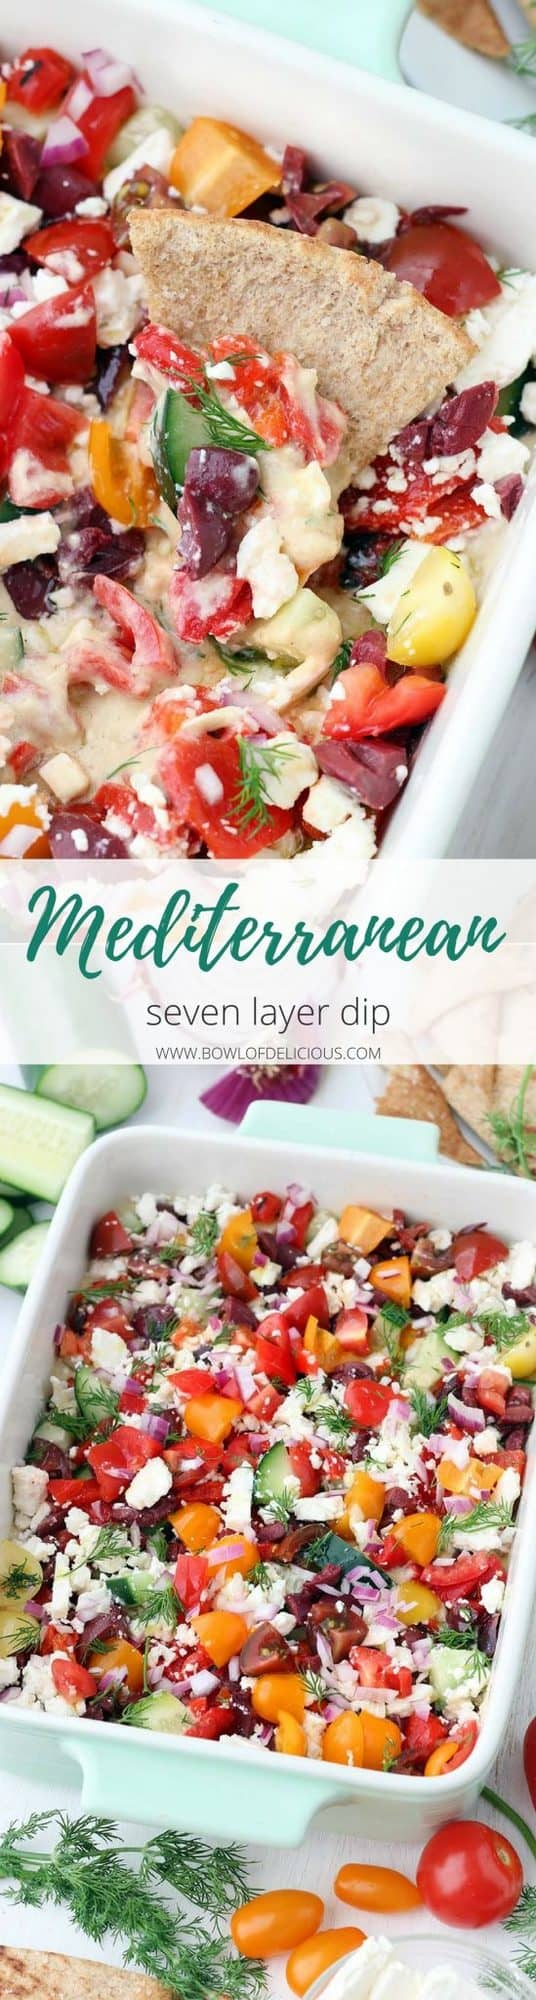 This Mediterranean Seven Layer Dip recipe is fresh and delicious! It's the perfect snack to serve with pita chips. No cooking required! It's packed with hummus, fresh veggies, olives, and feta and it's super easy to assemble. #MediterraneanDiet #Vegetarian #Appetizers #NoCookRecipes #SevenLayerDip #GlutenFreeSnacks